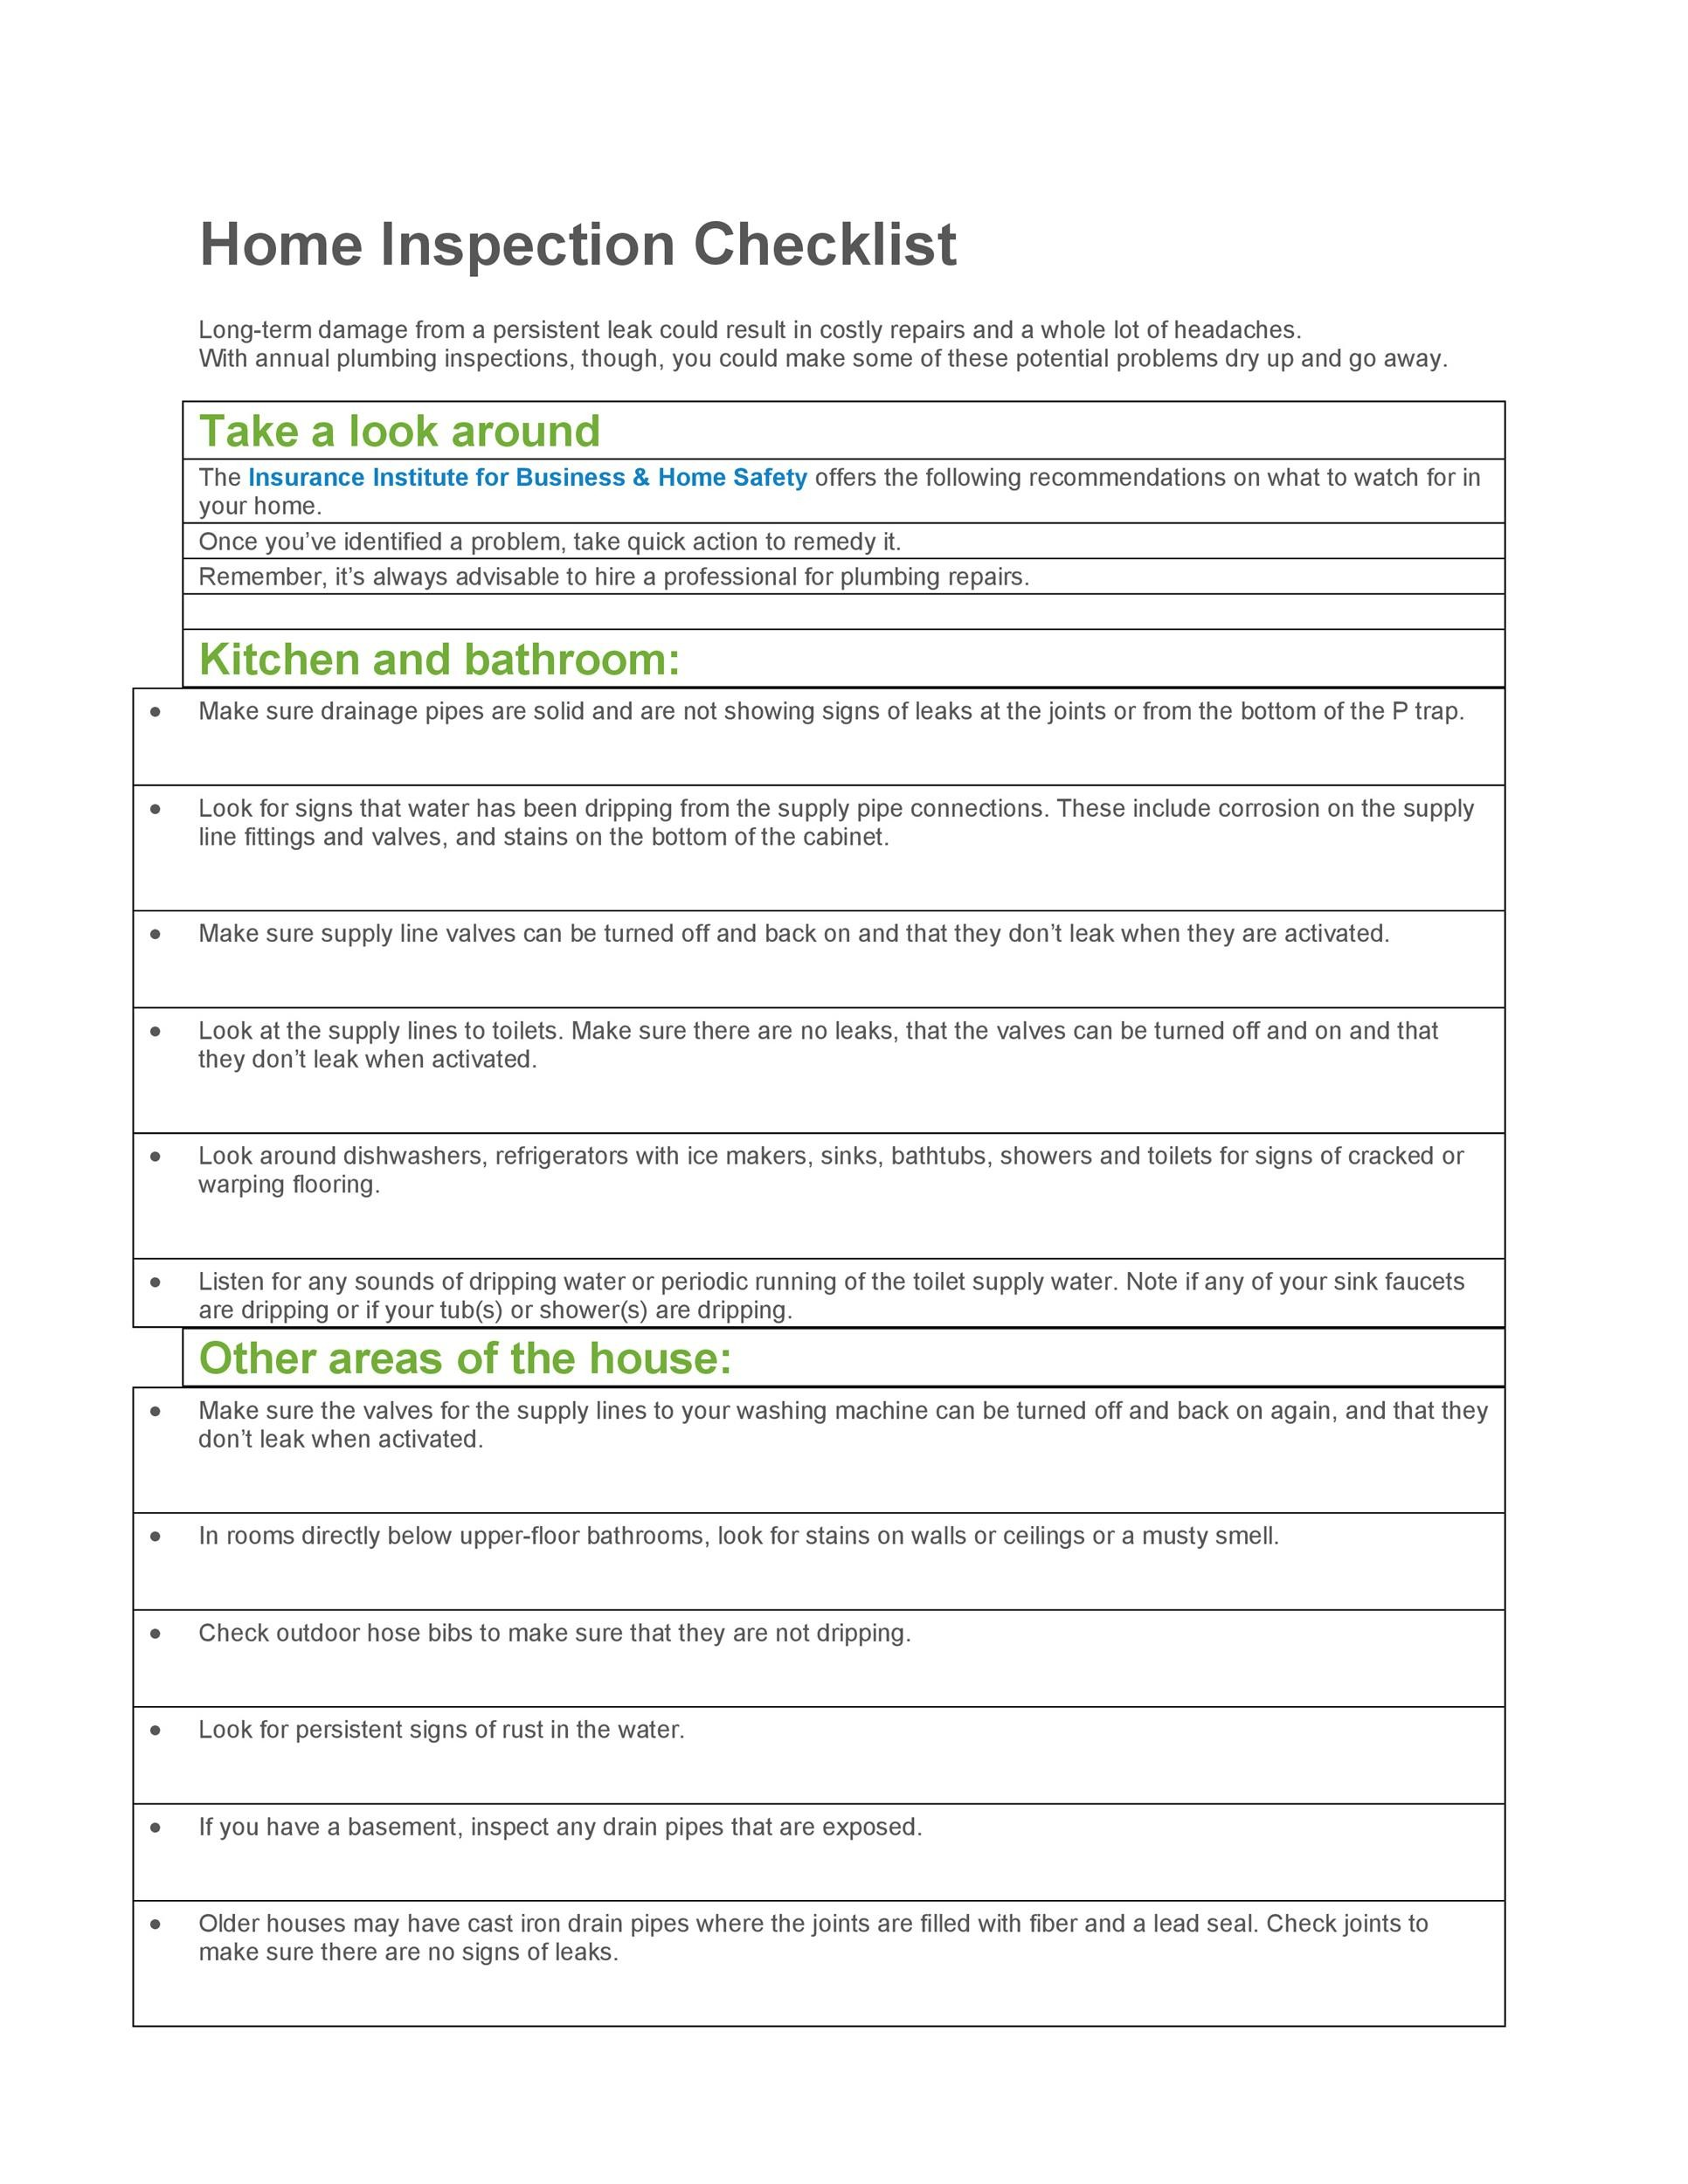 20+ Printable Home Inspection Checklists (Word, PDF) - Template Lab - sample home buying checklist